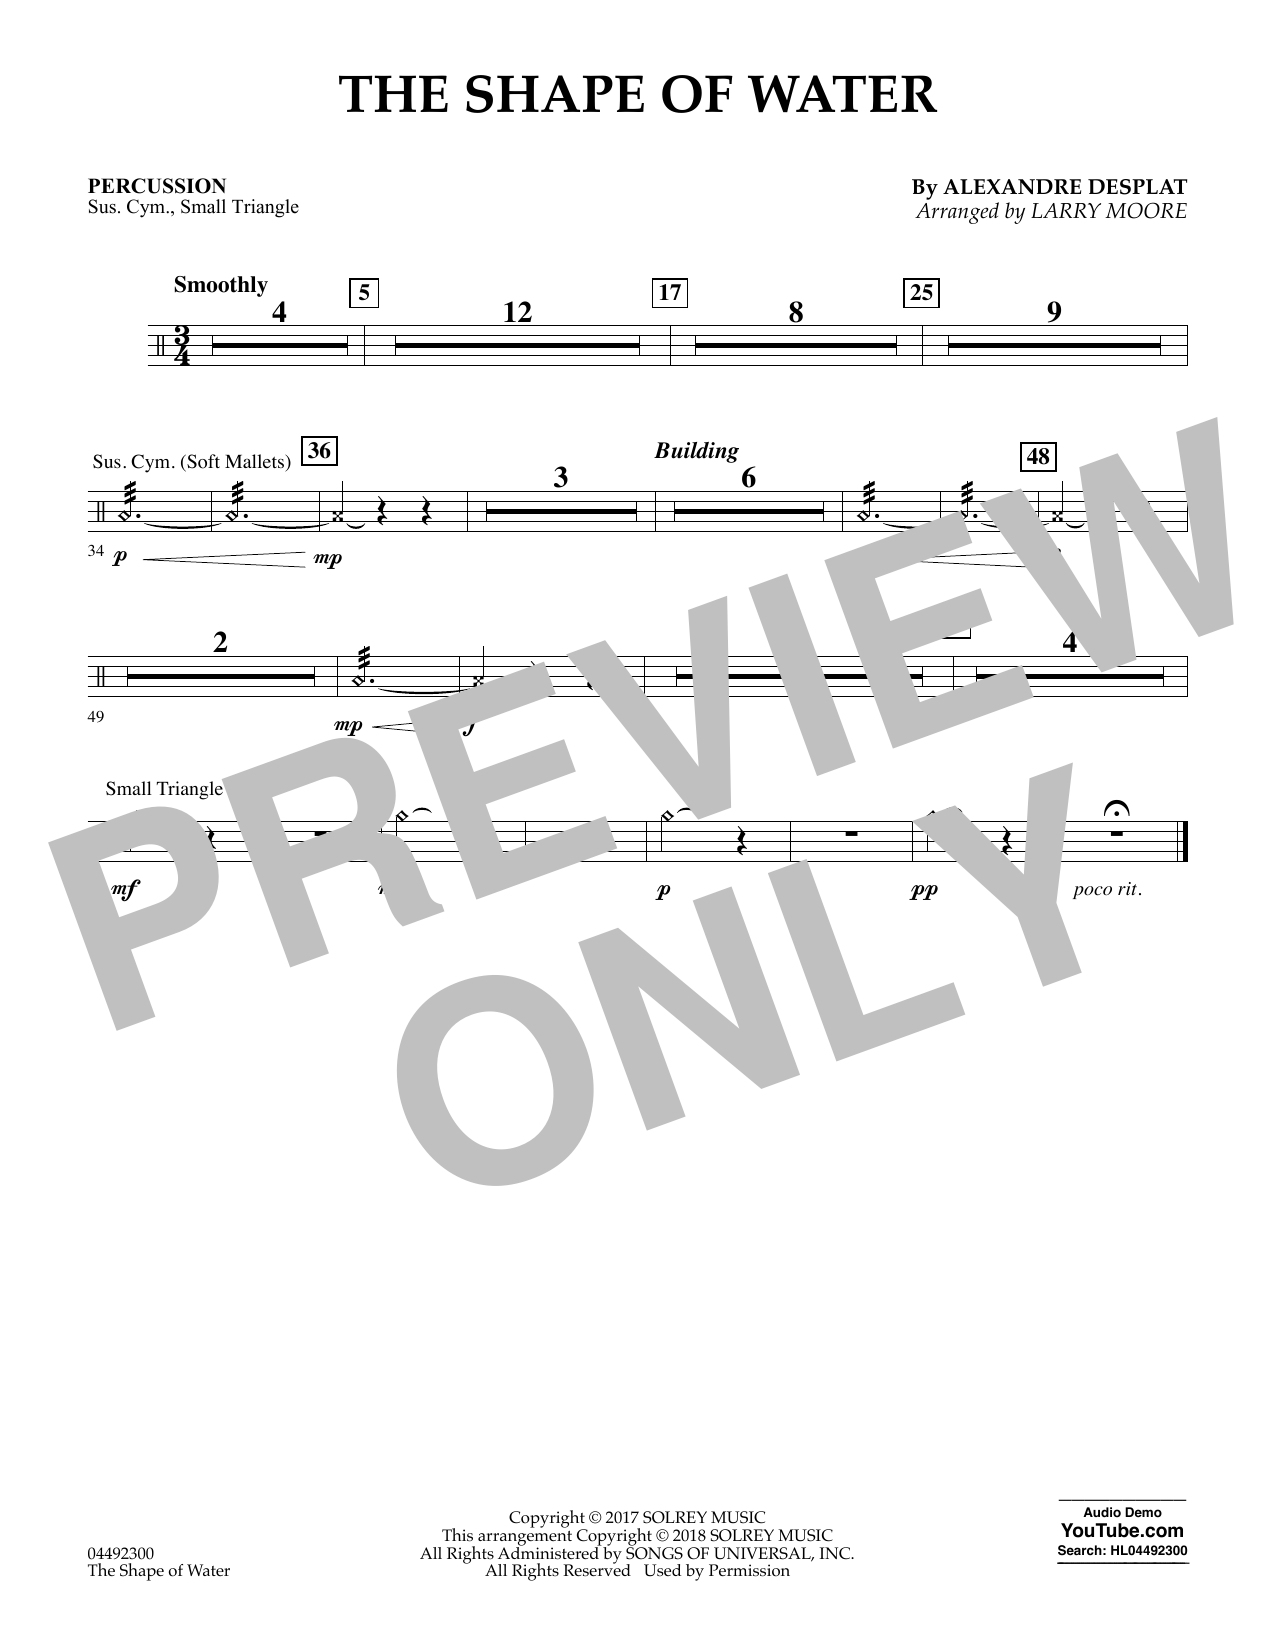 Alexandre Desplat The Shape of Water (arr. Larry Moore) - Percussion sheet music notes and chords. Download Printable PDF.